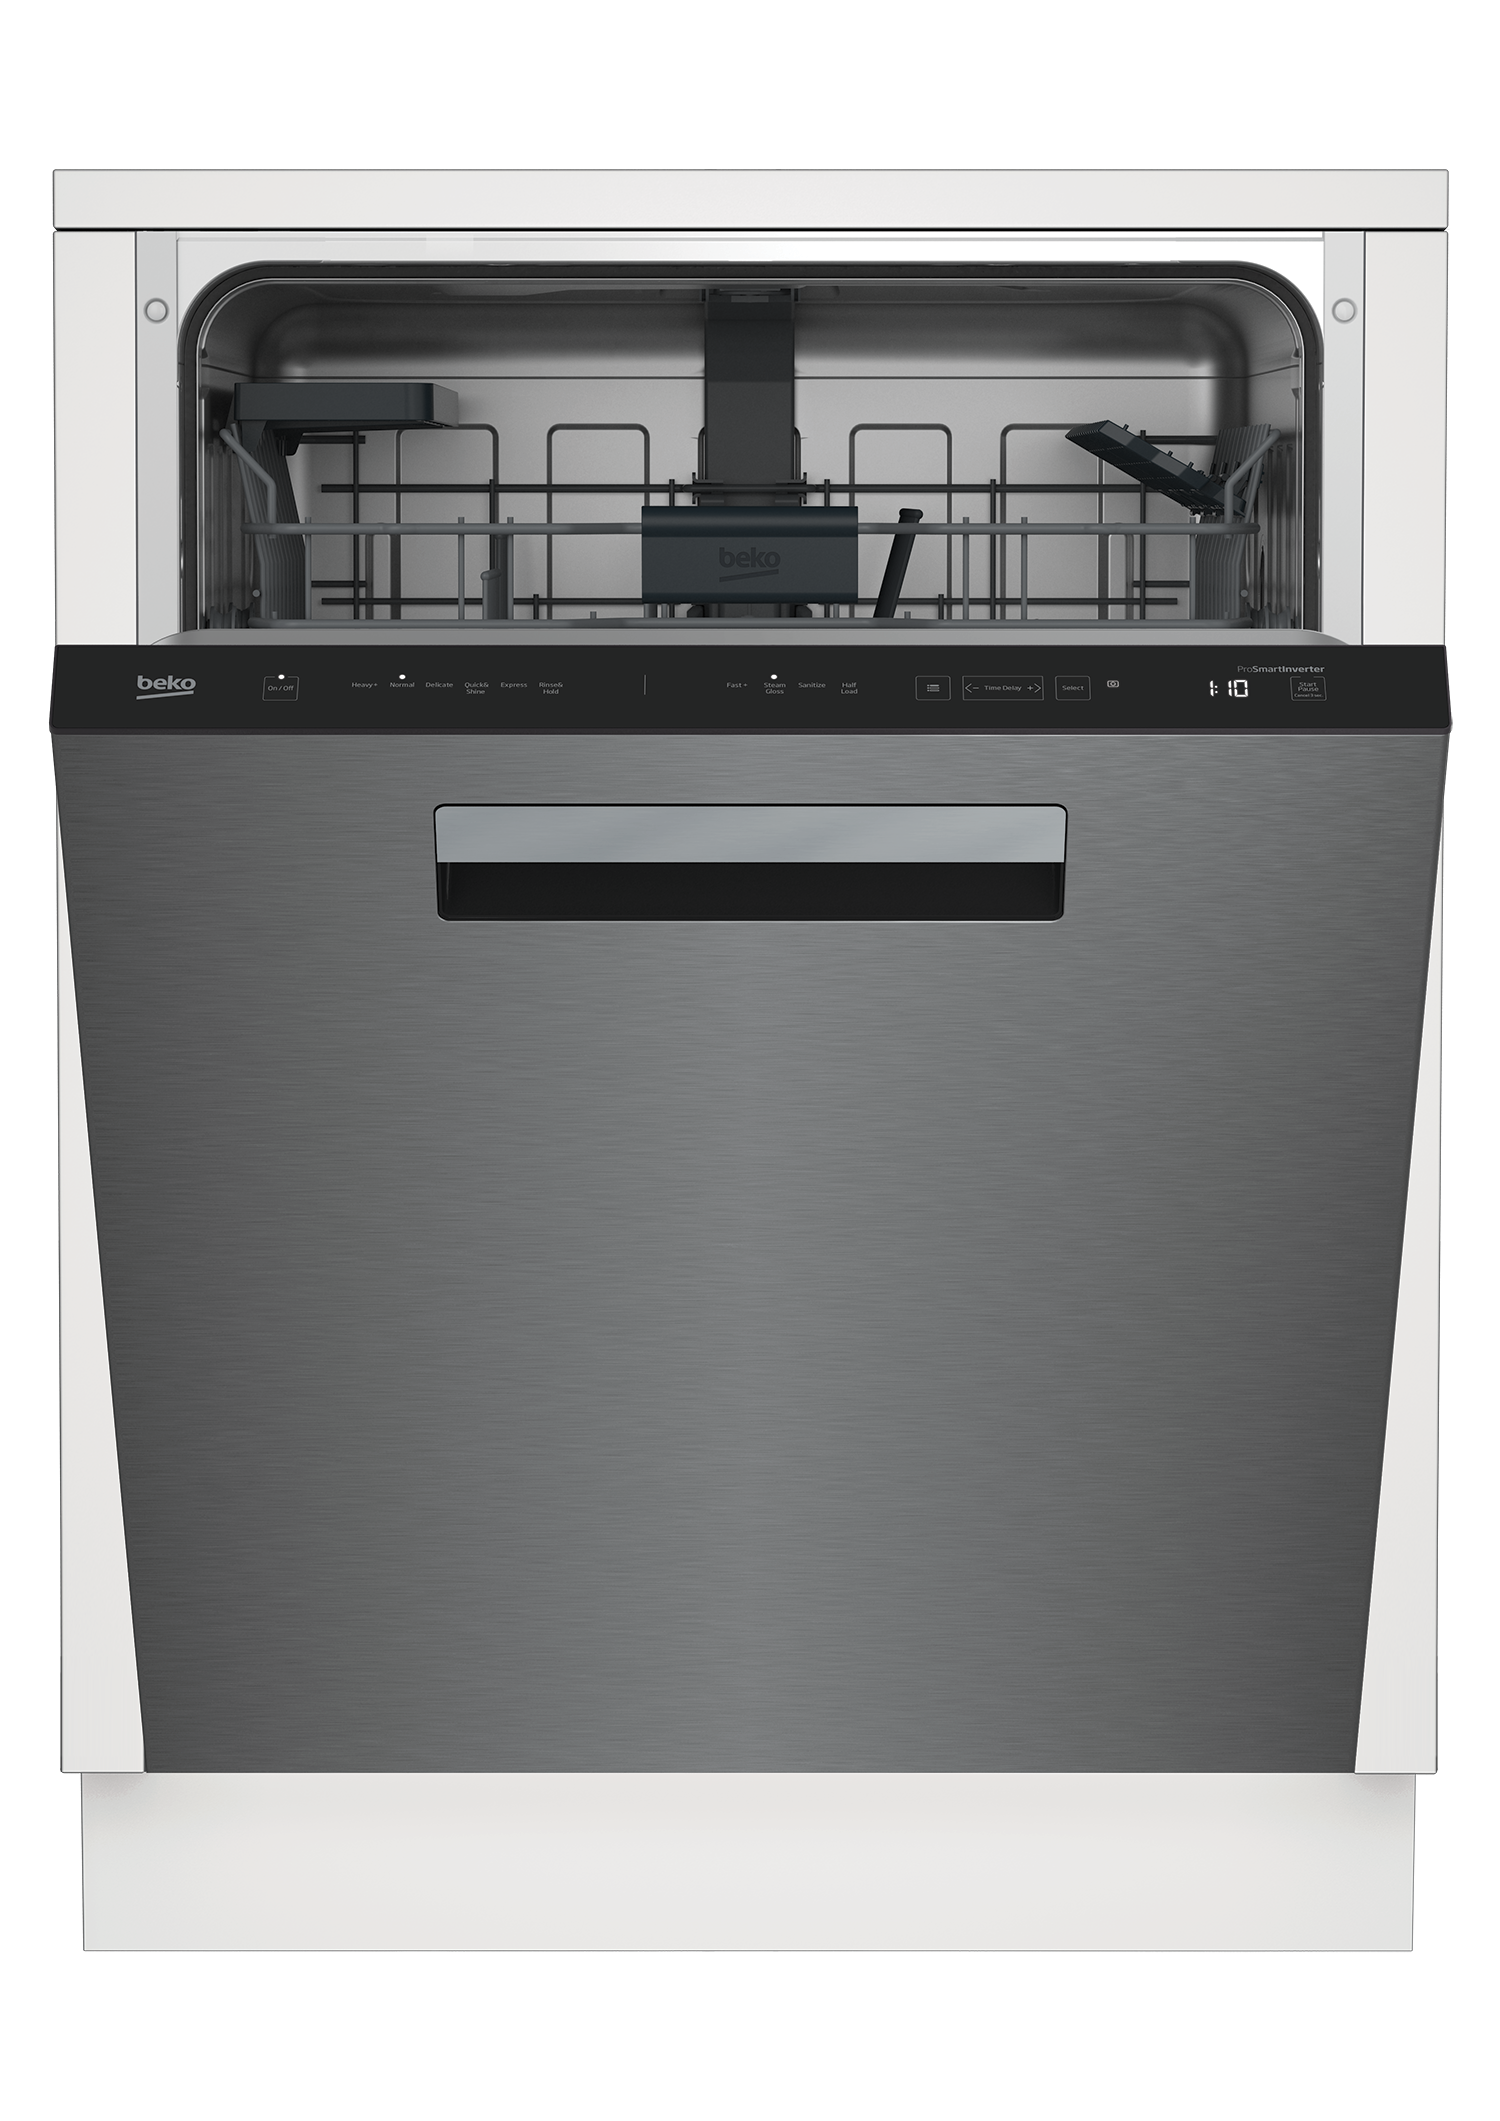 Tall Tub Stainless Dishwasher, 14 place settings, 45 dBa, Top Control with Pocket Handle DDT36430XIH